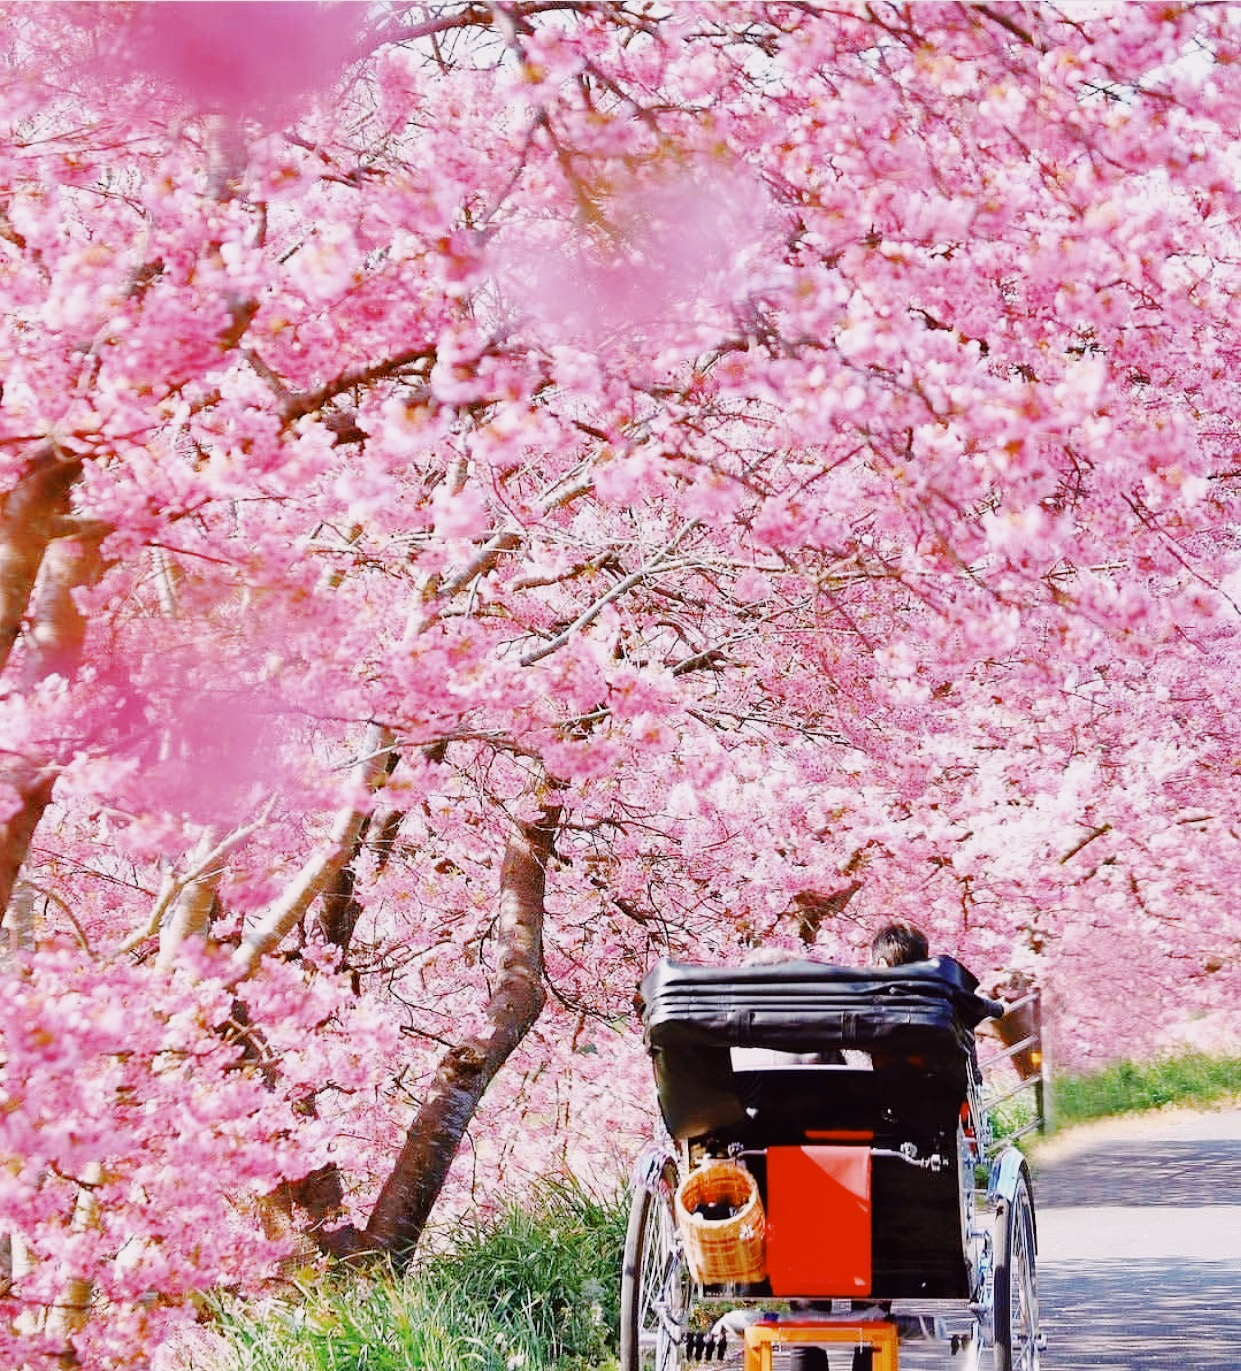 5 most beautiful places to visit in spring, spring pictures, cherry blossoms, indian blogger, british blog, spring in japan,